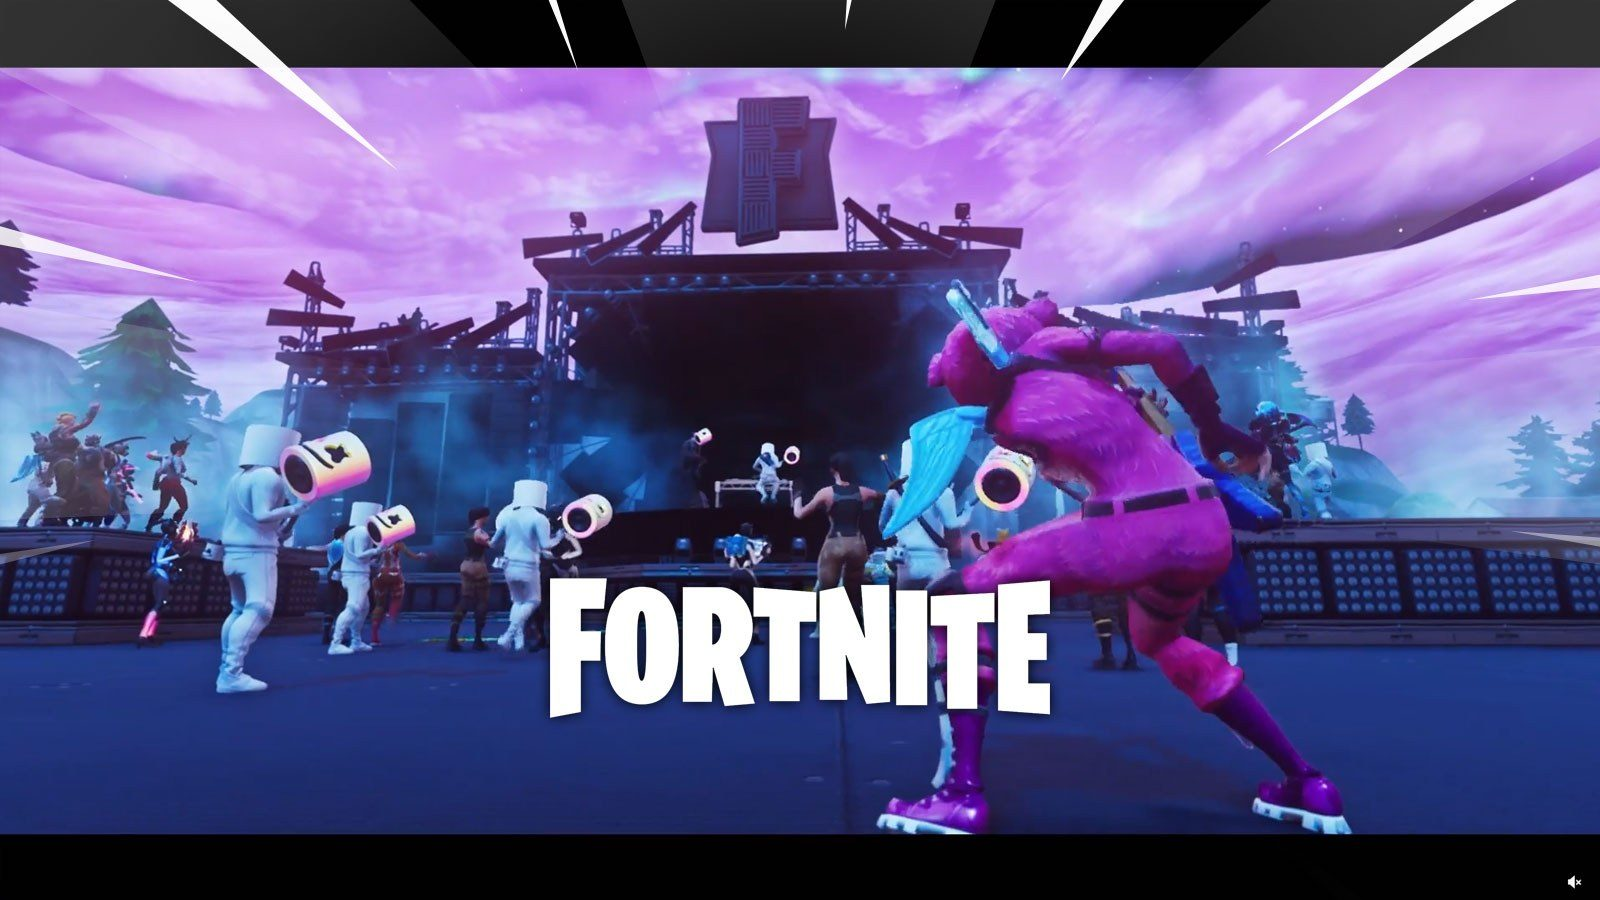 Marshmello Fortnite Wallpaper Fortnite Free Play Online